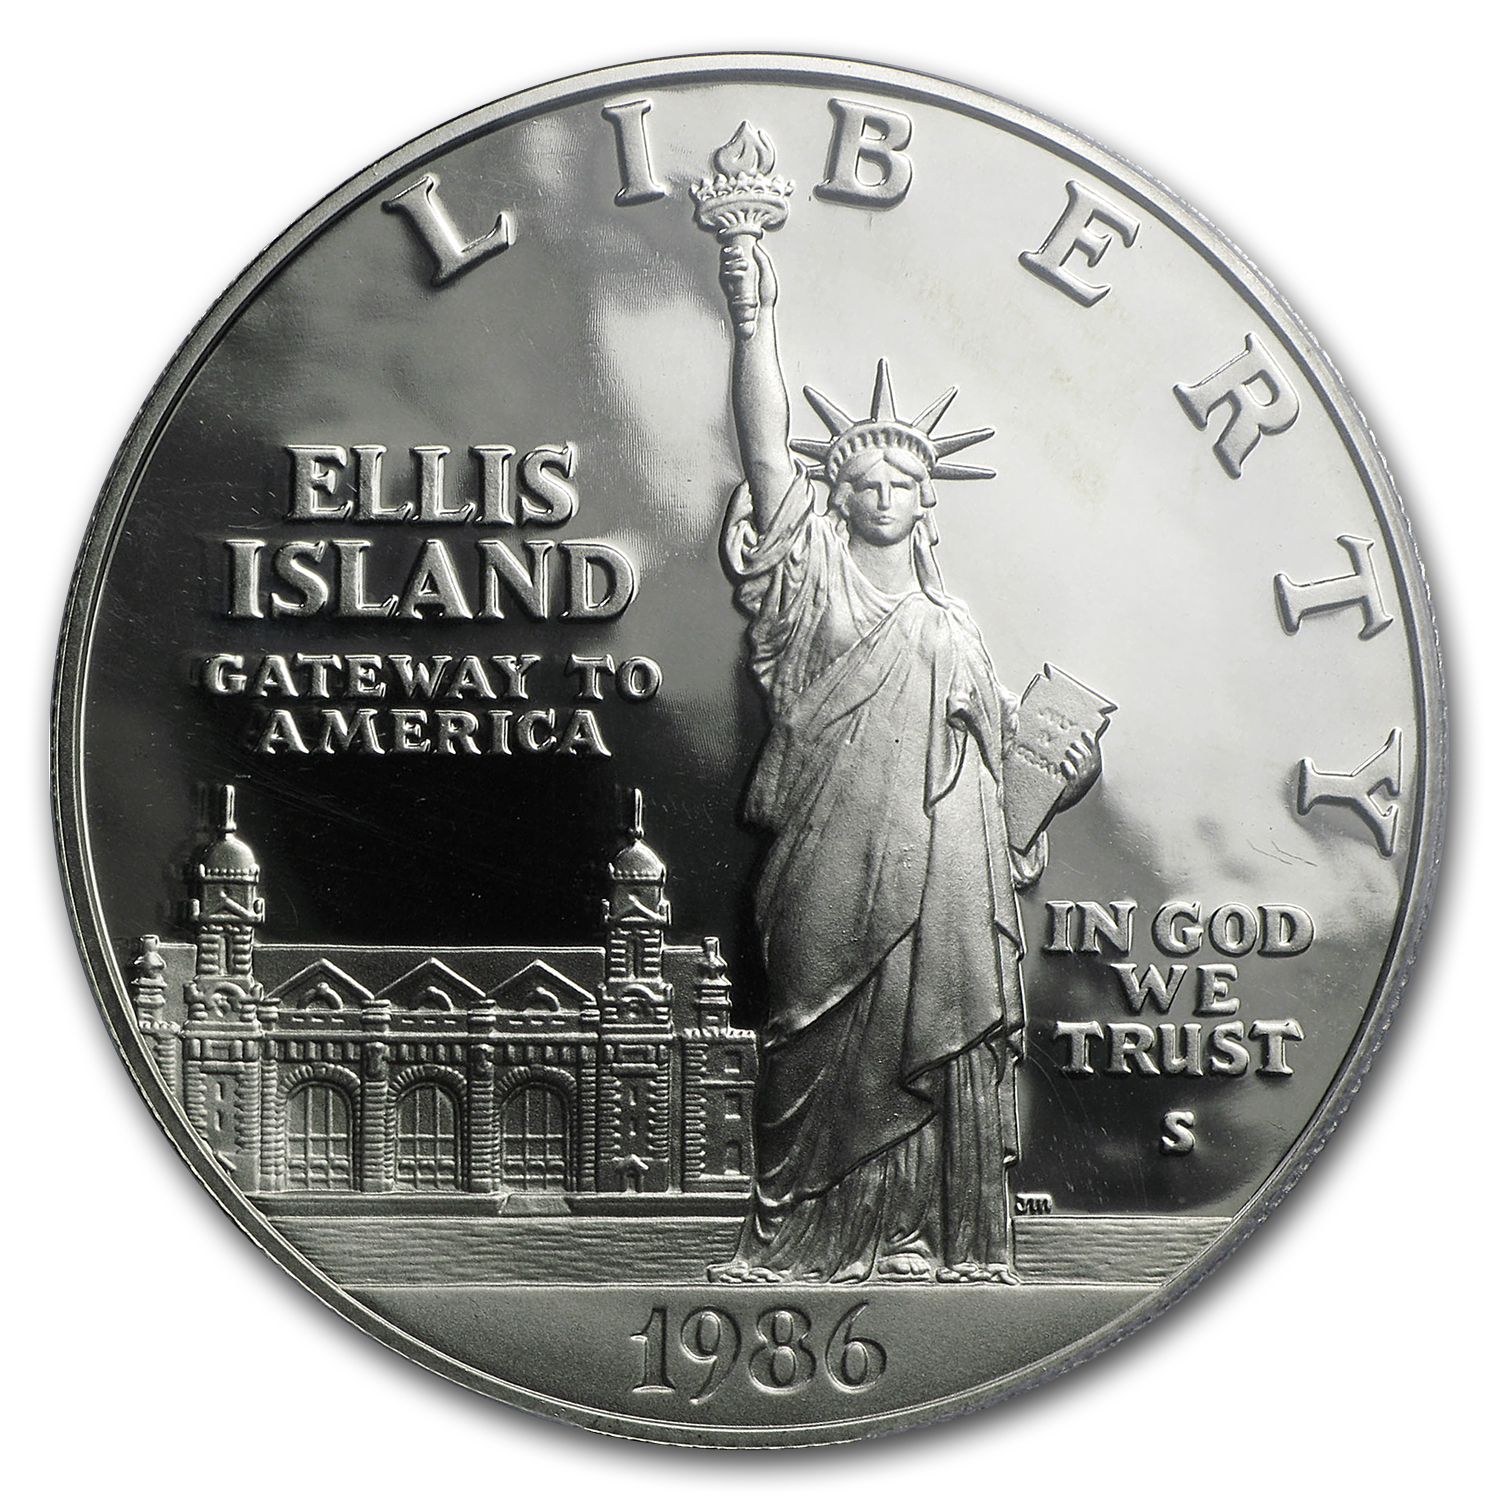 1986-S Statue of Liberty $1 Silver Commem - PR-70 DCAM PCGS